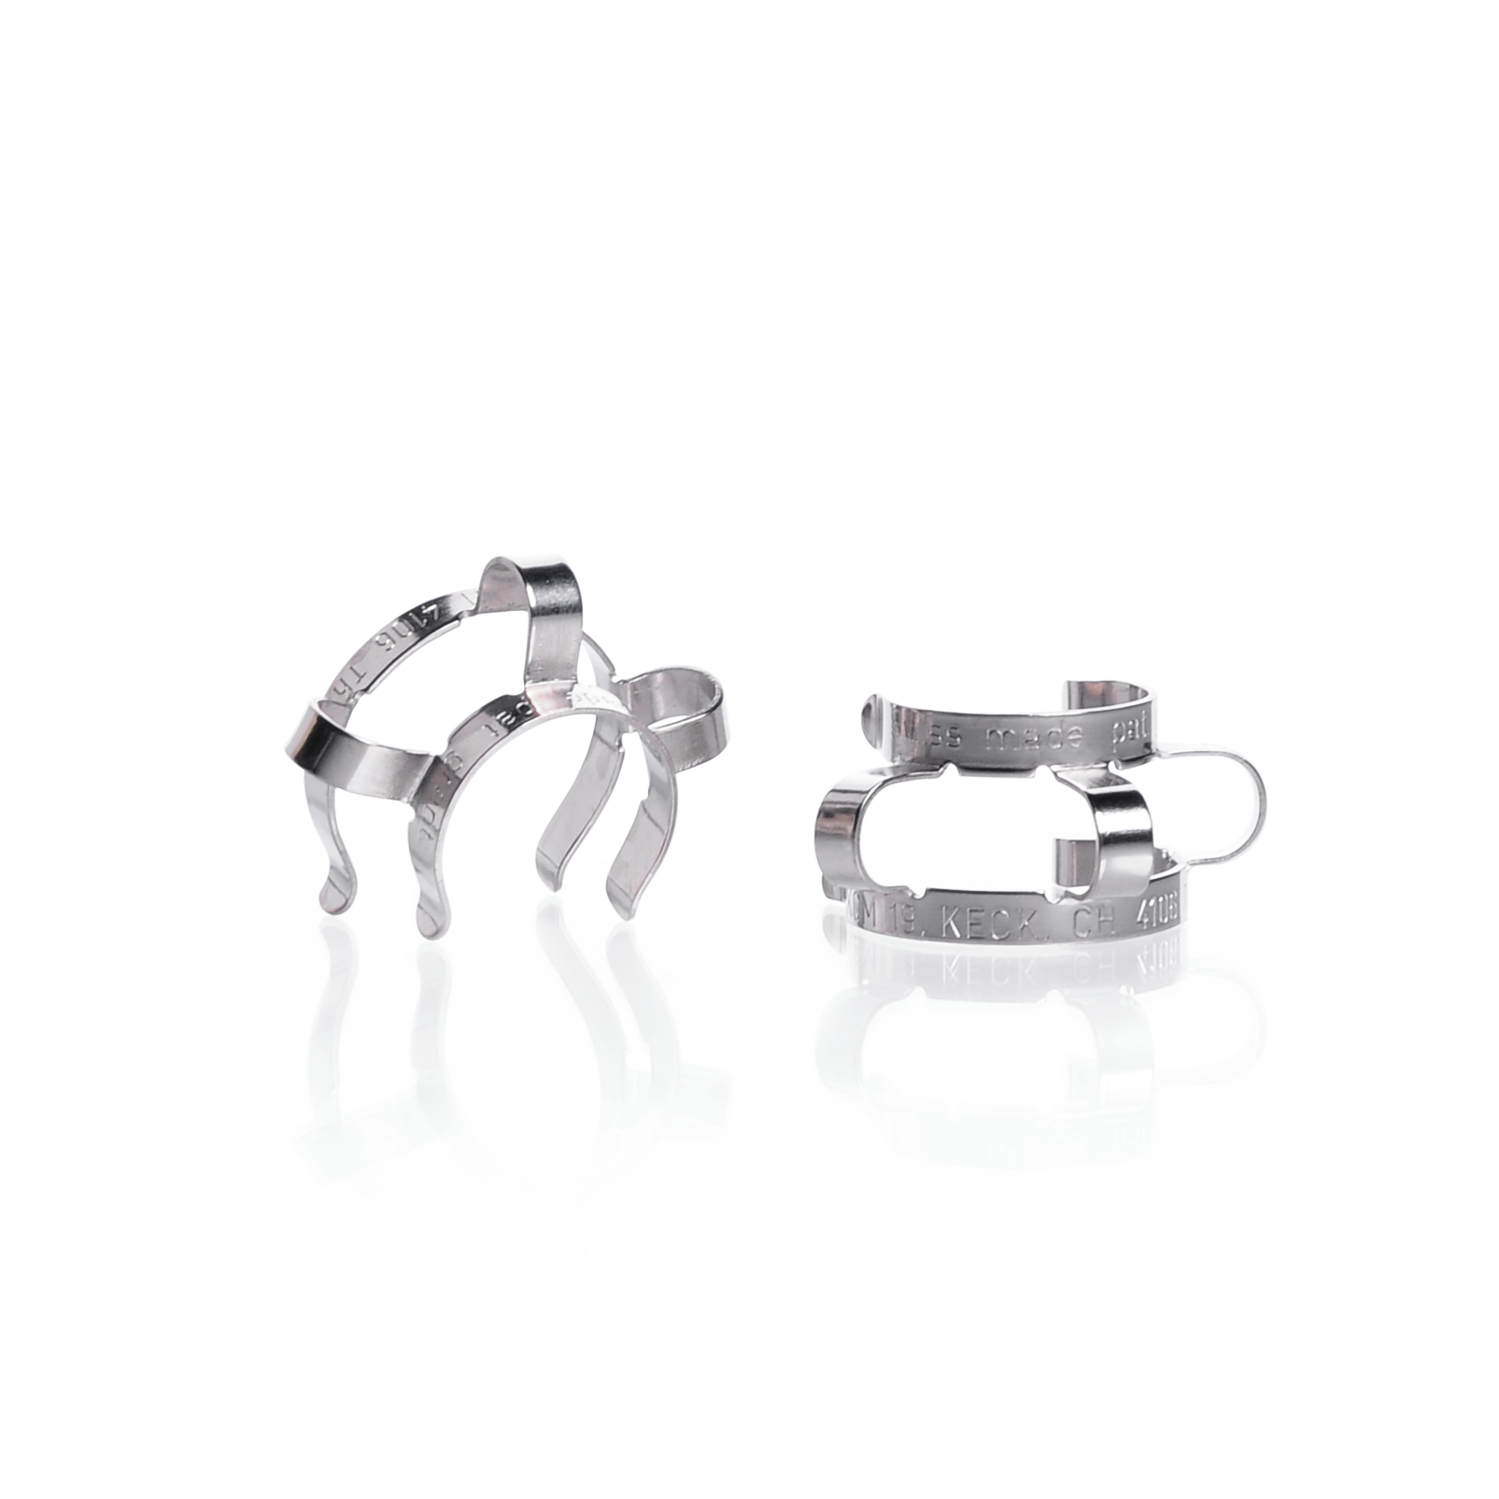 KIMBLE® Nickel-Plated Standard Taper Joint Clamp, for joints 19/38, 19/22